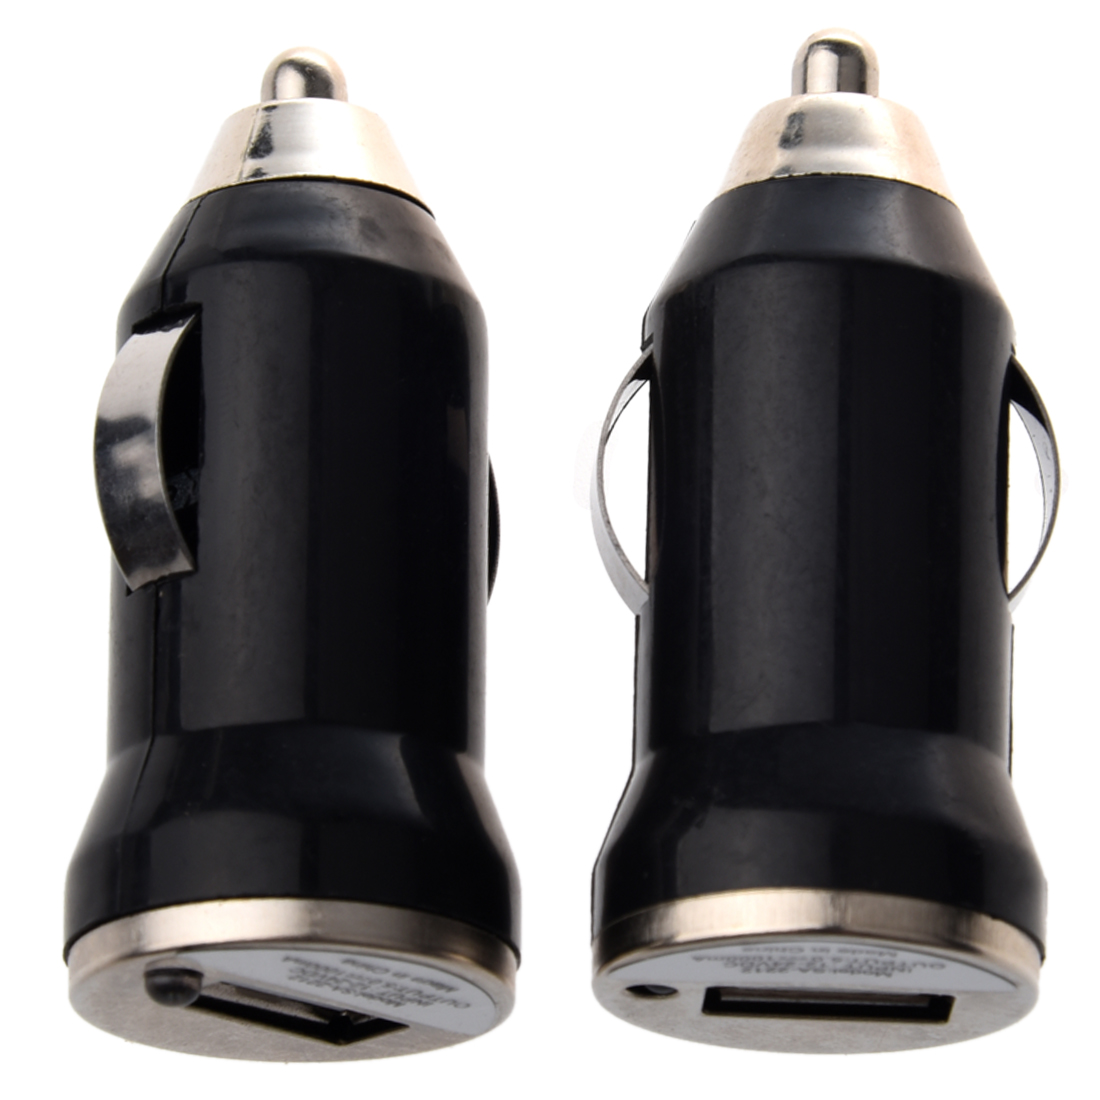 2x usb Black Car Charger Adapter for Apple phone W8G8